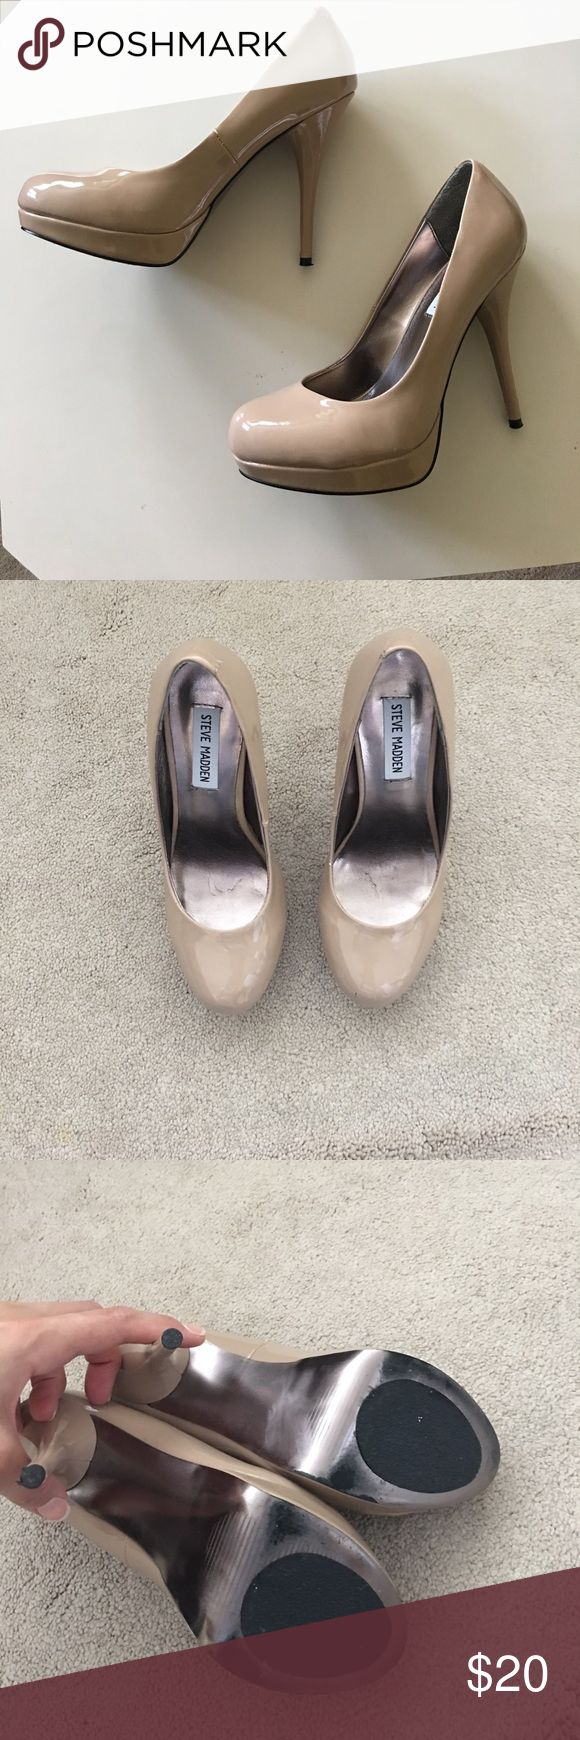 Steve Madden shoes Steve Madden nude pumps worn only a couple of times looks perfect just some minor wearing on the sole of the shoes. Steve Madden Shoes Heels